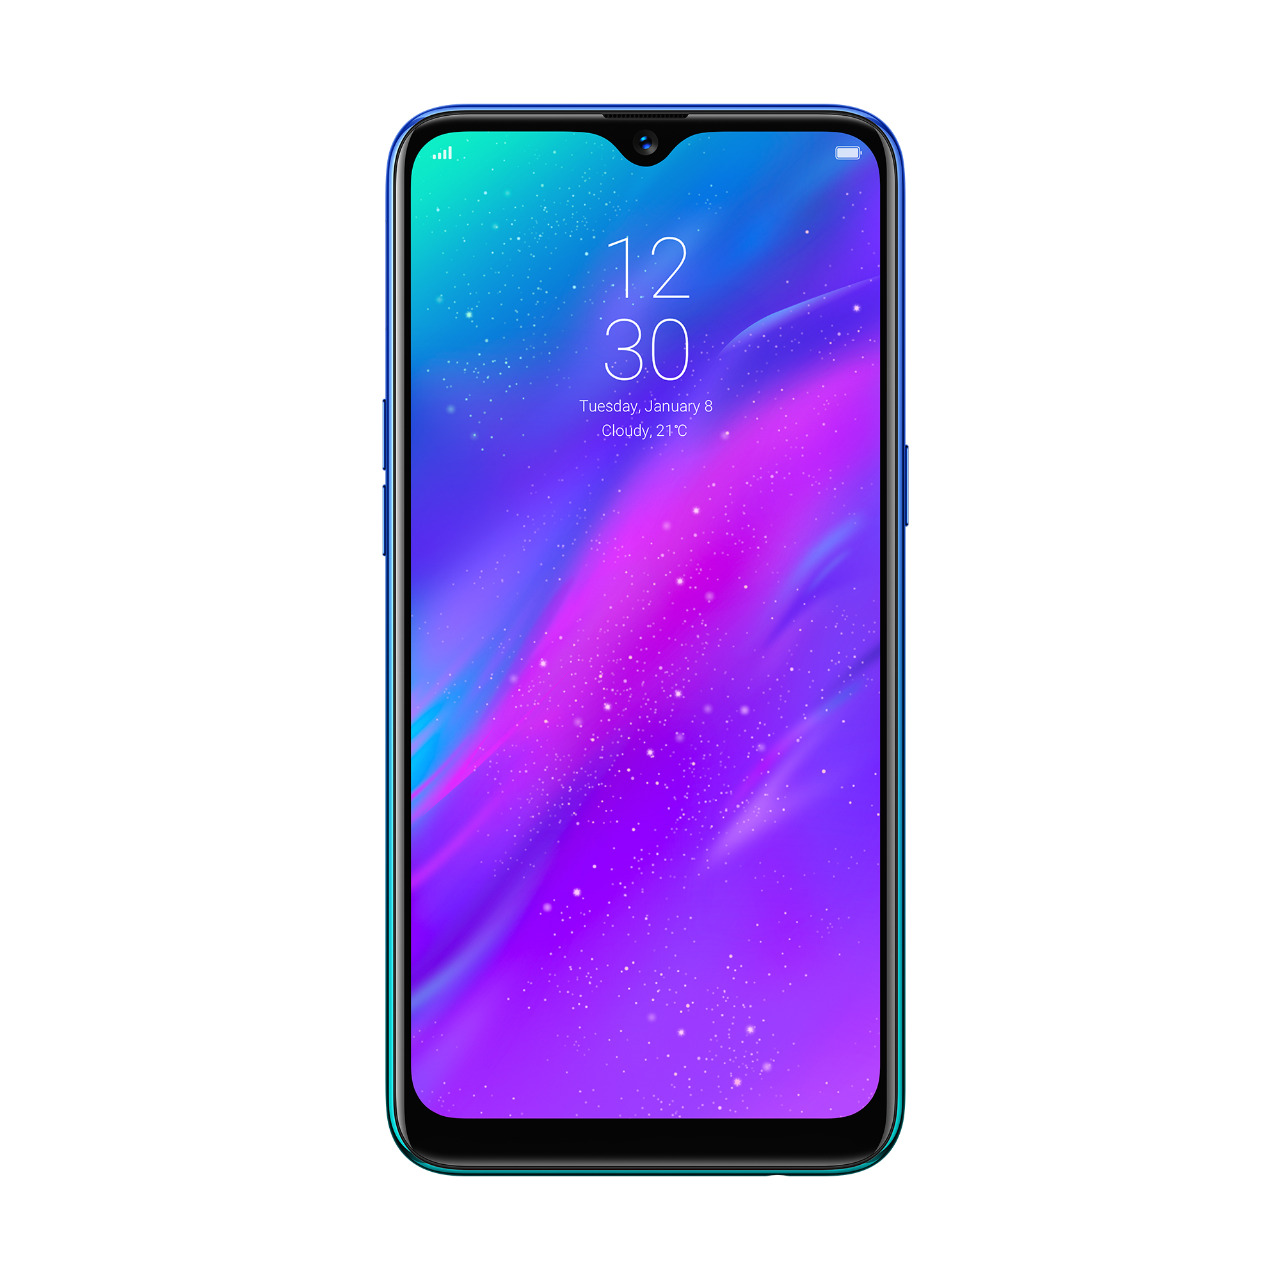 realme to launch their realme 3 smartphone in Pakistan